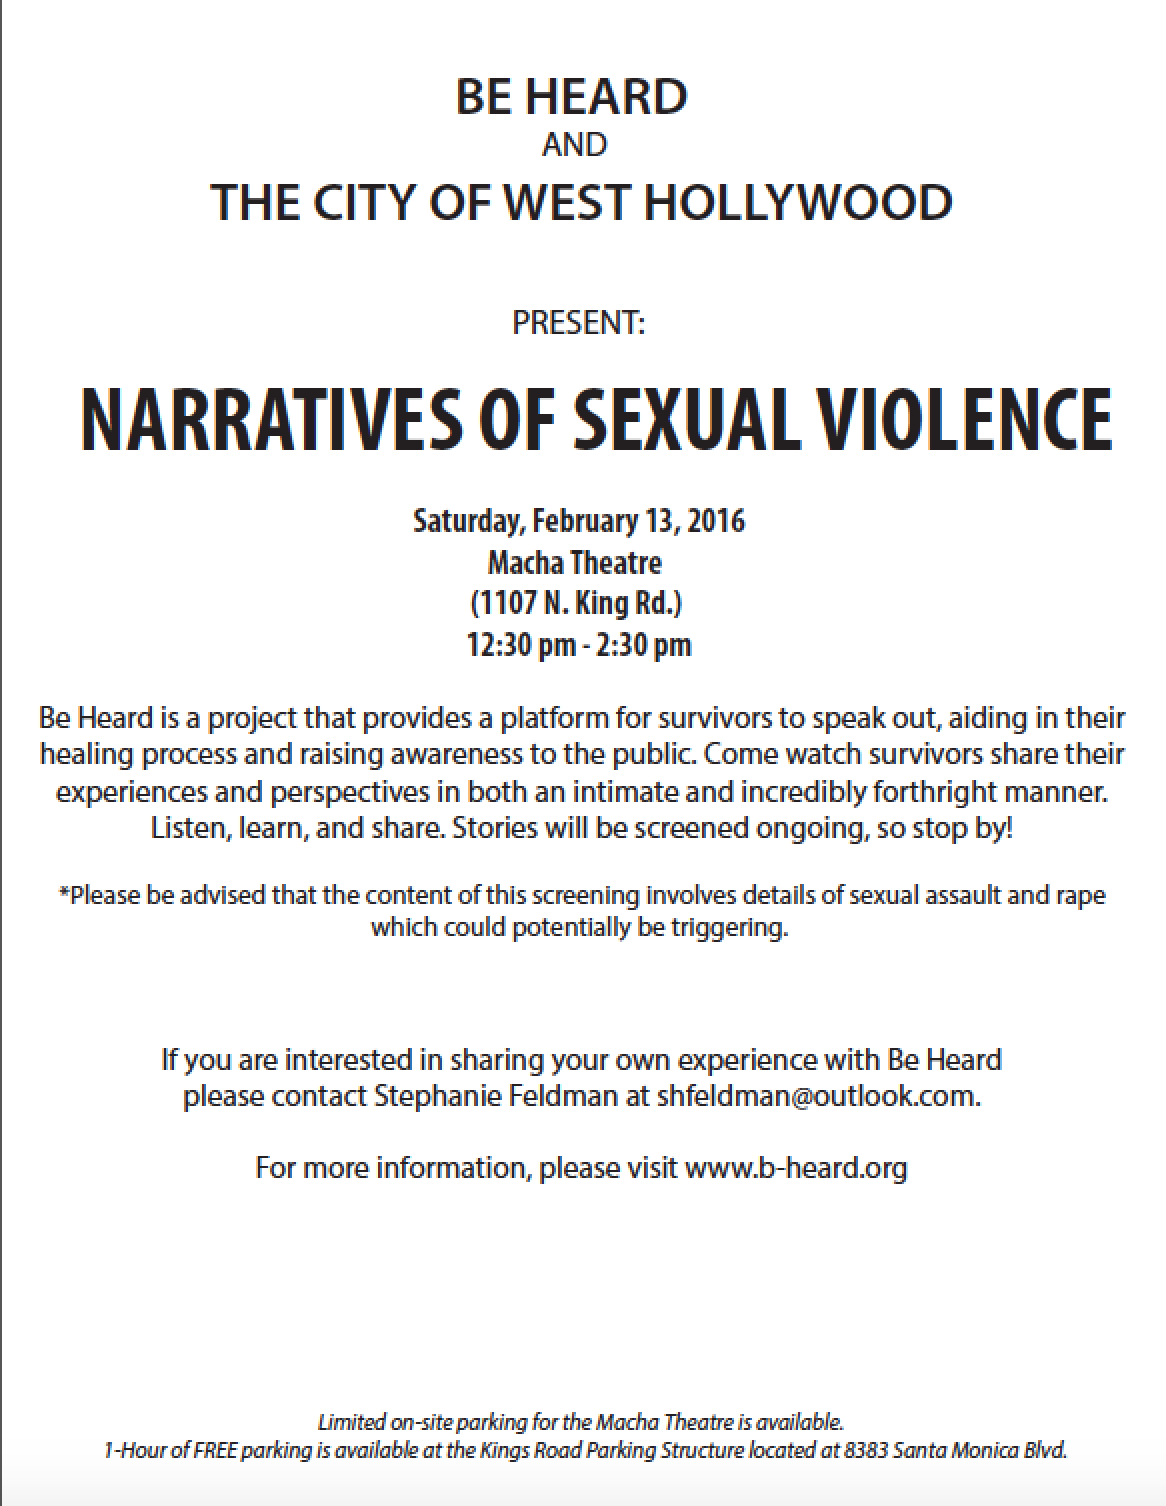 City of West Hollywood Screening